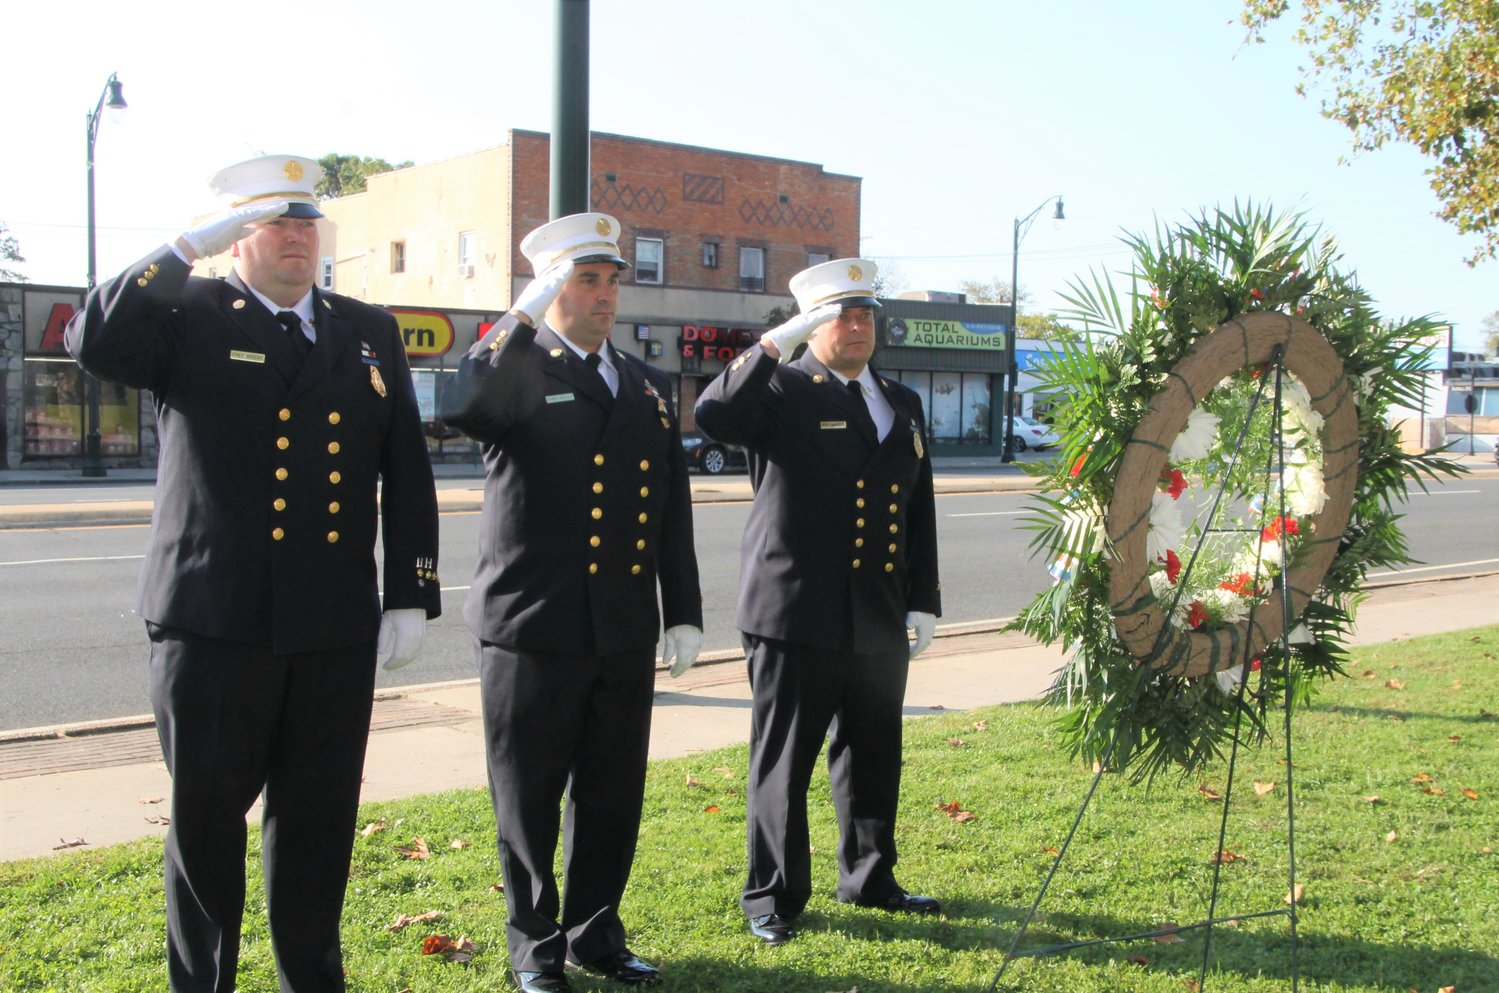 Chief Michael Brooks, far left, Second Assistant Chief Chris Kelly and Third Assistant Chief Danny Ambrosio paid their respects at a stone marker bearing their names and placed a wreath in their memory.